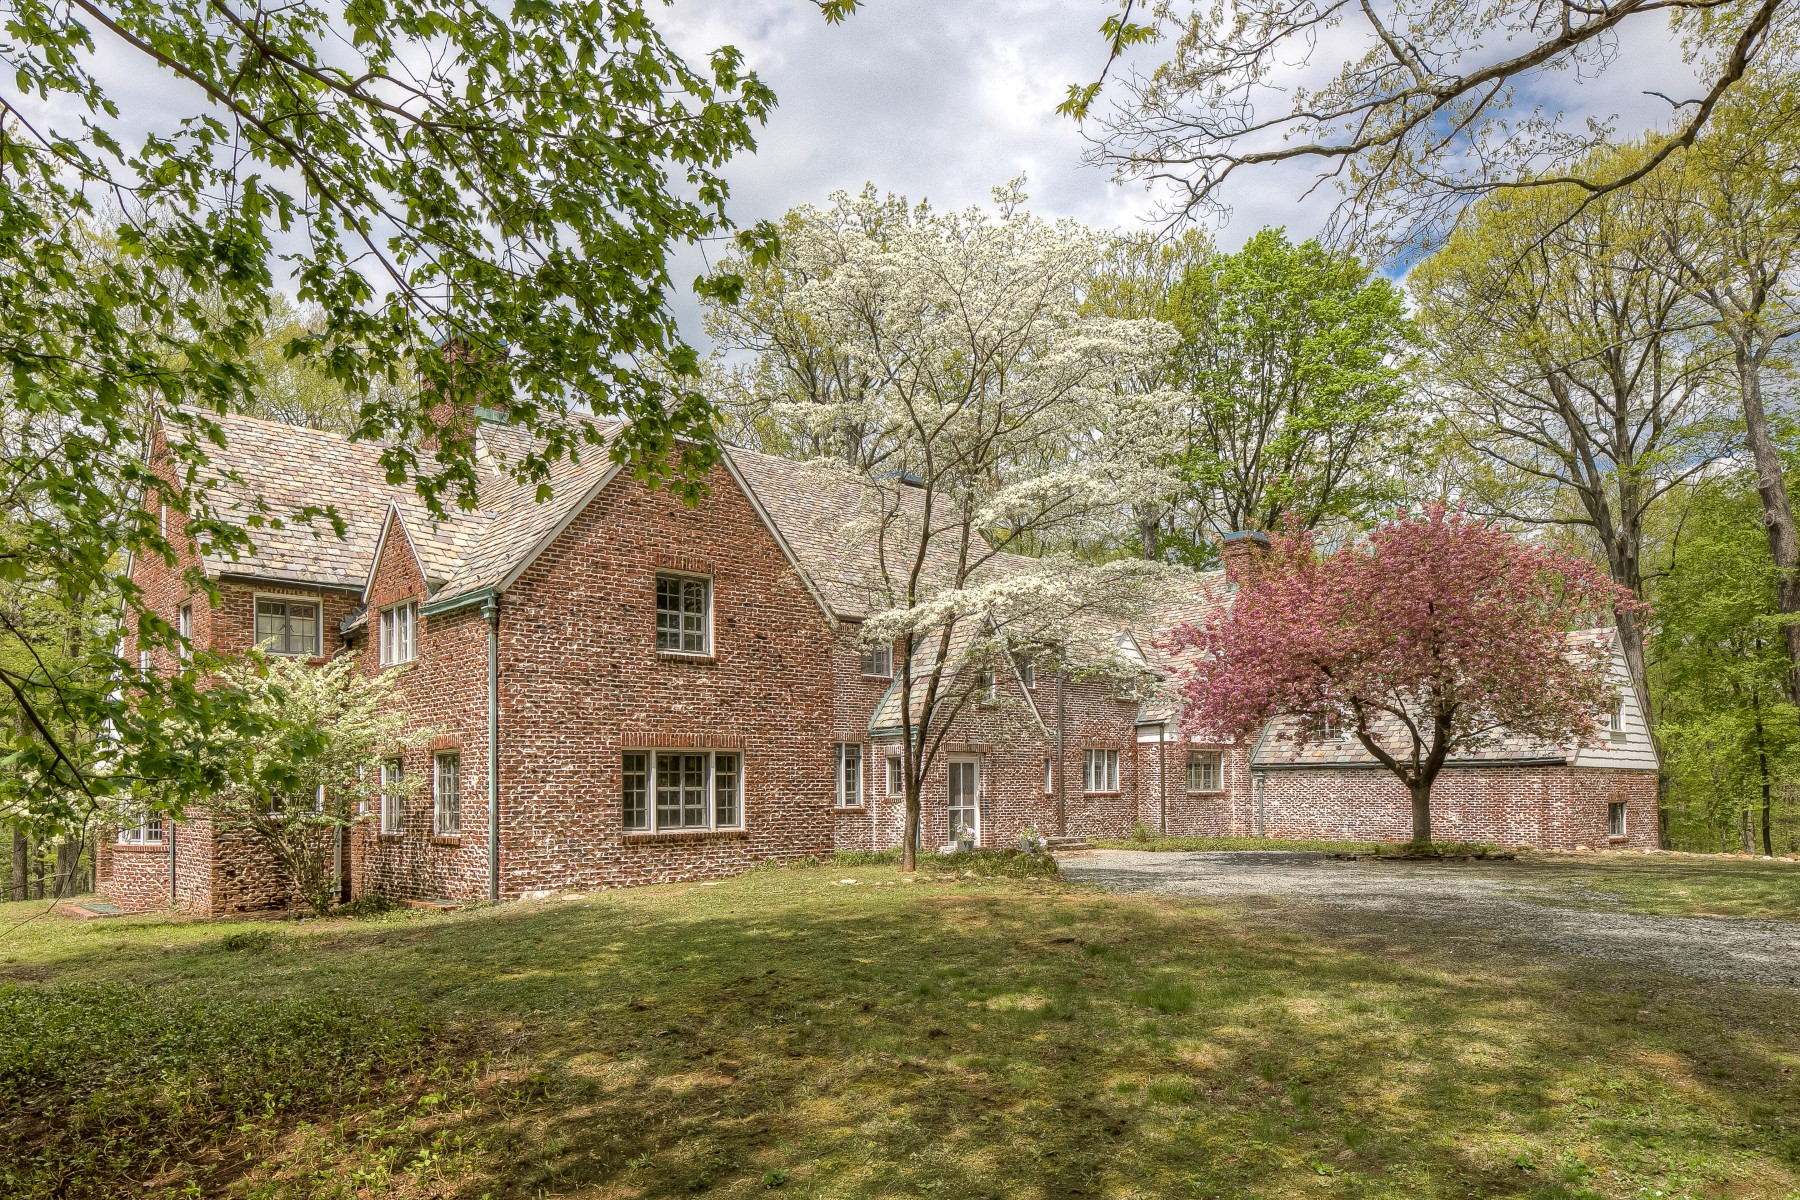 Single Family Home for Sale at Blue Chimneys 7 Horseshoe Bend Road Mendham, 07945 United States